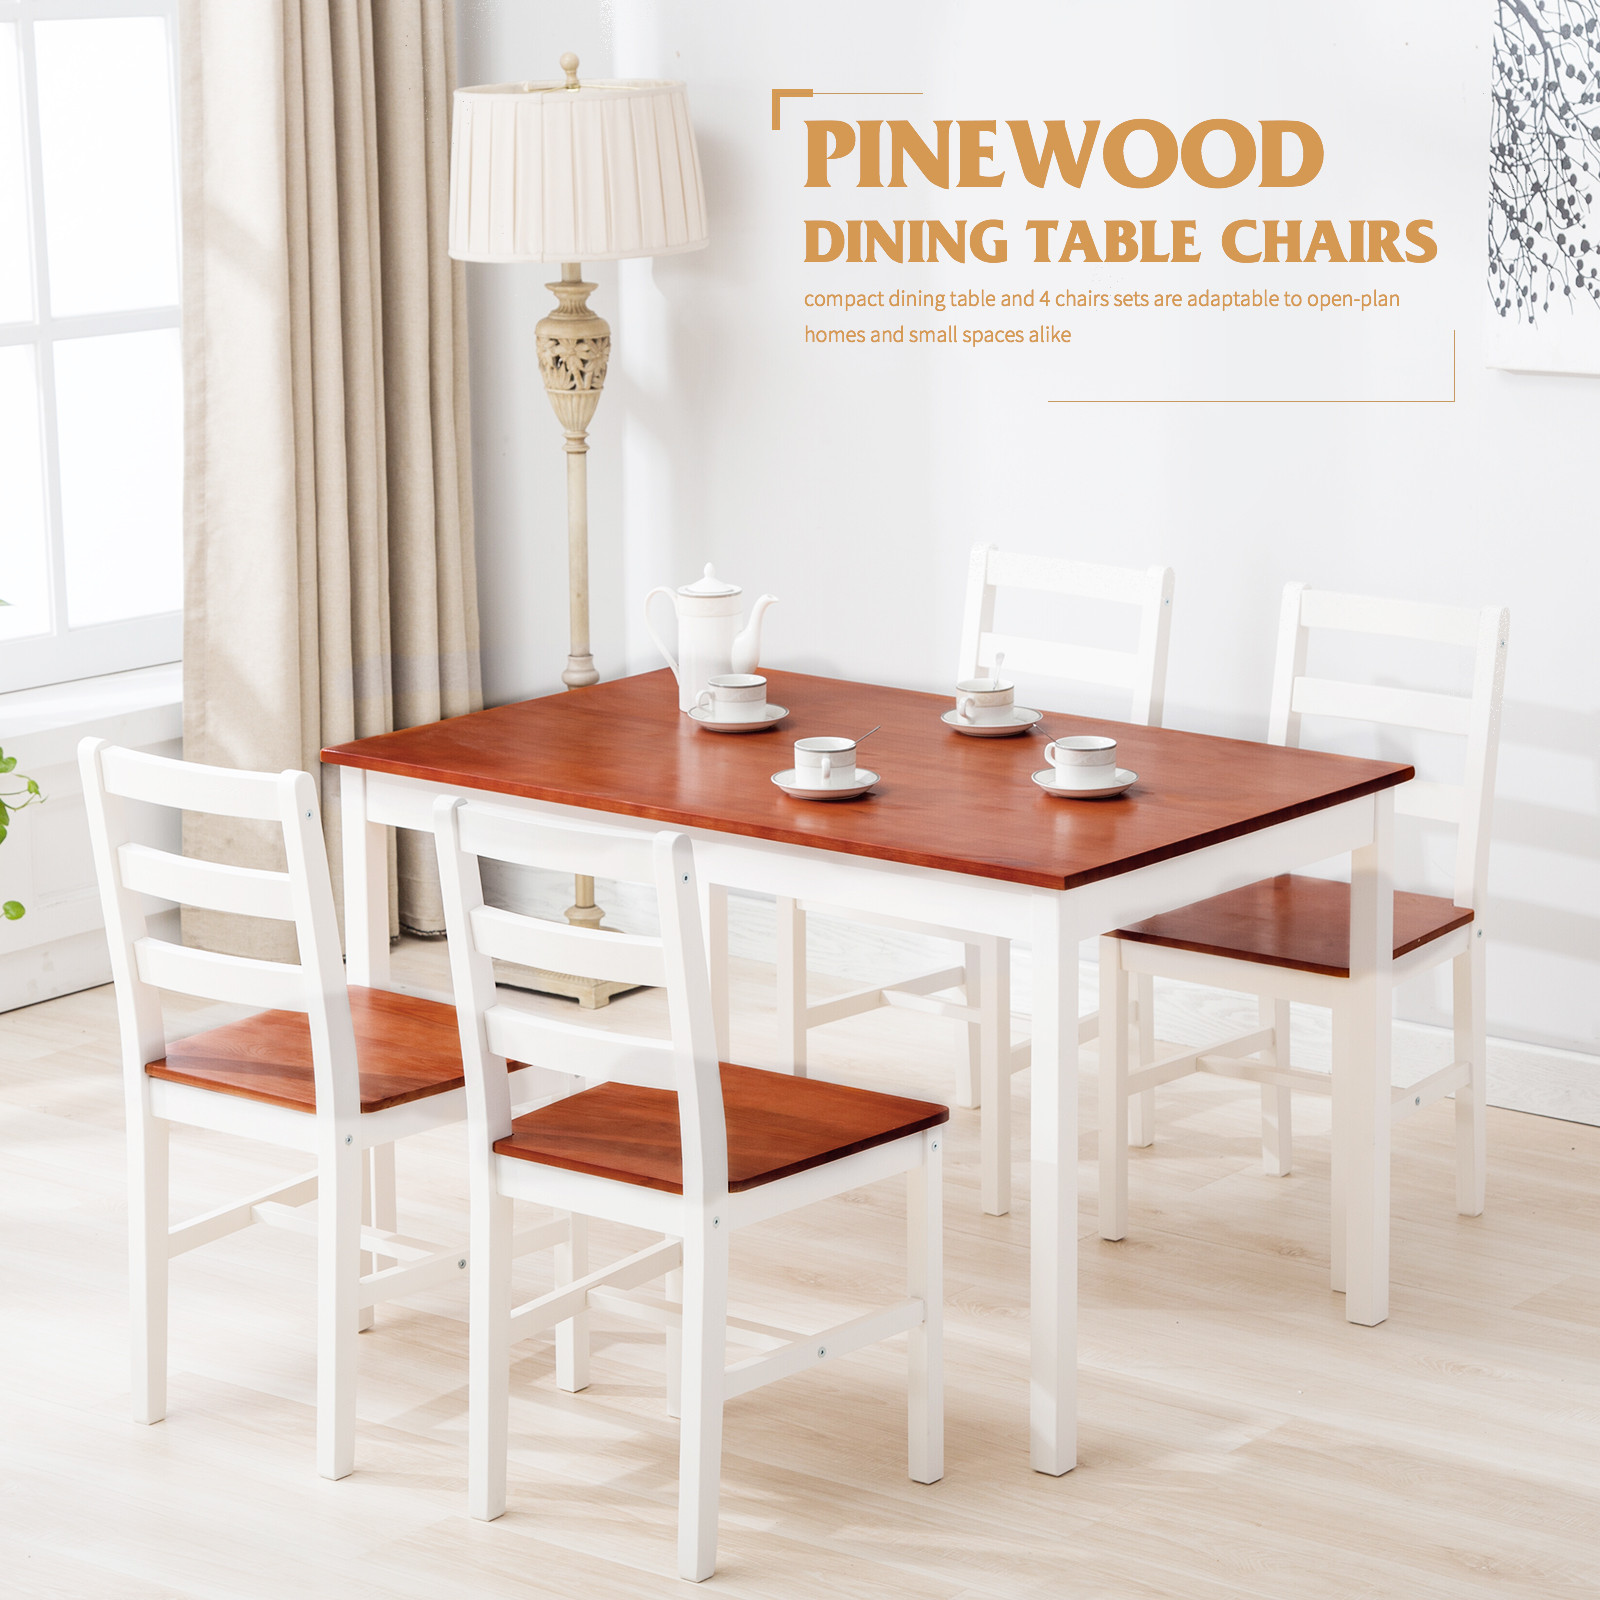 Best ideas about Wood Dining Room Table . Save or Pin 5 Piece Pine Wood Dining Table and Chairs Dining Table Set Now.